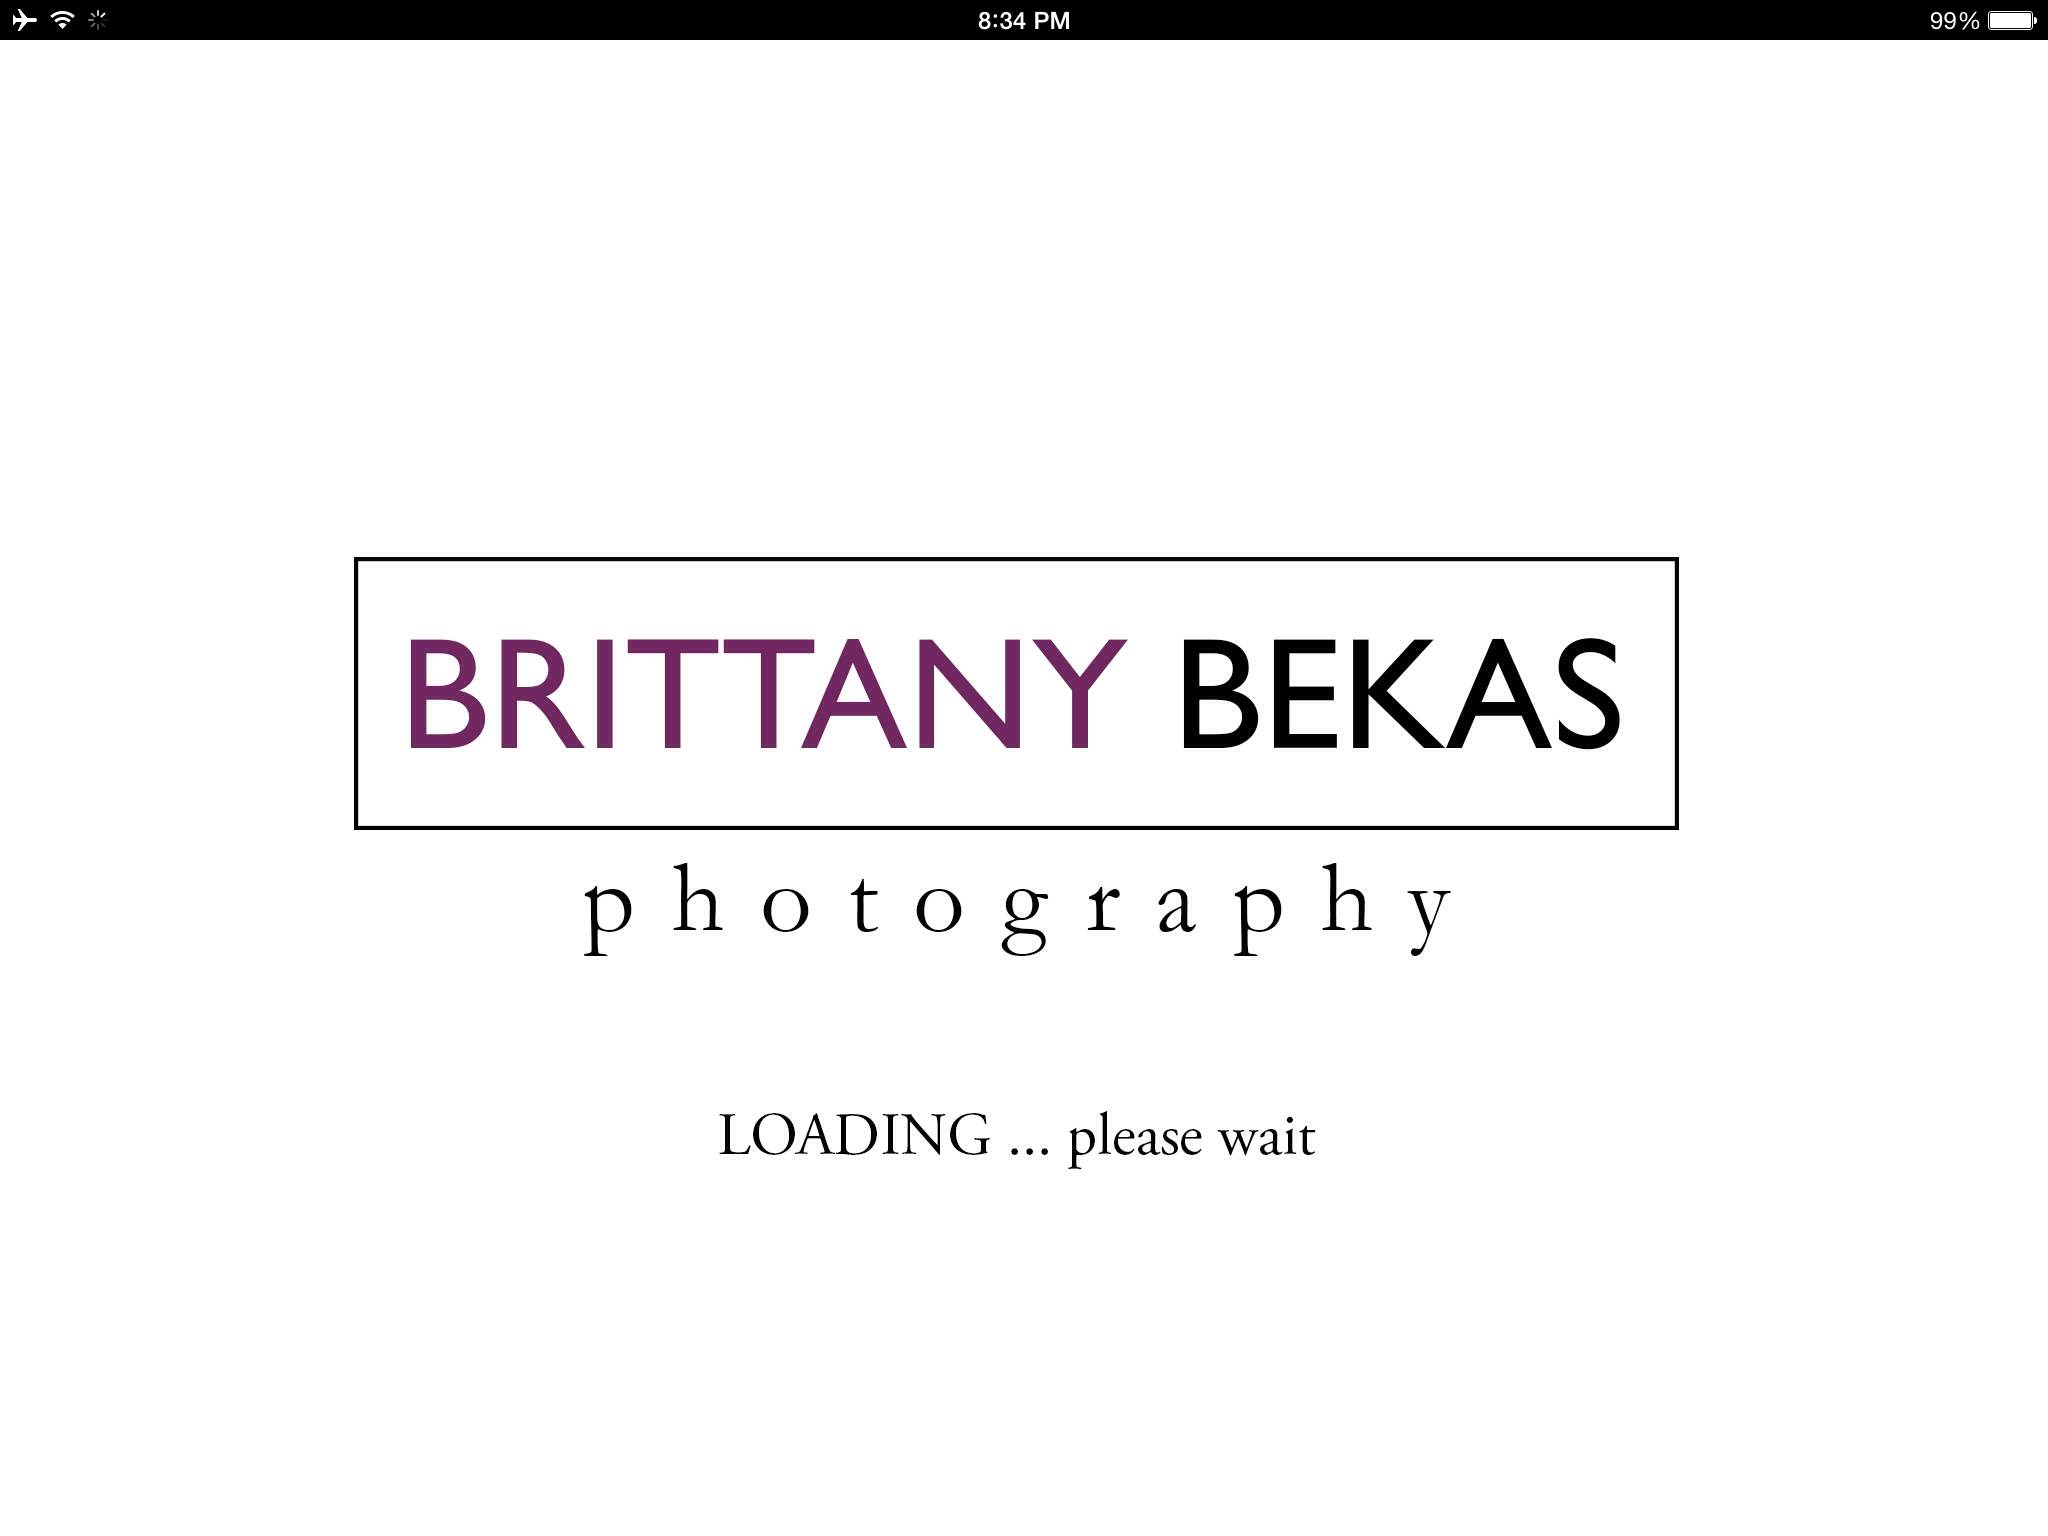 custom smartphone / tablet photo gallery app // brittany bekas photography - www.brittanybekas.com // wedding + lifestyle photographer based in Chicago, Illinois